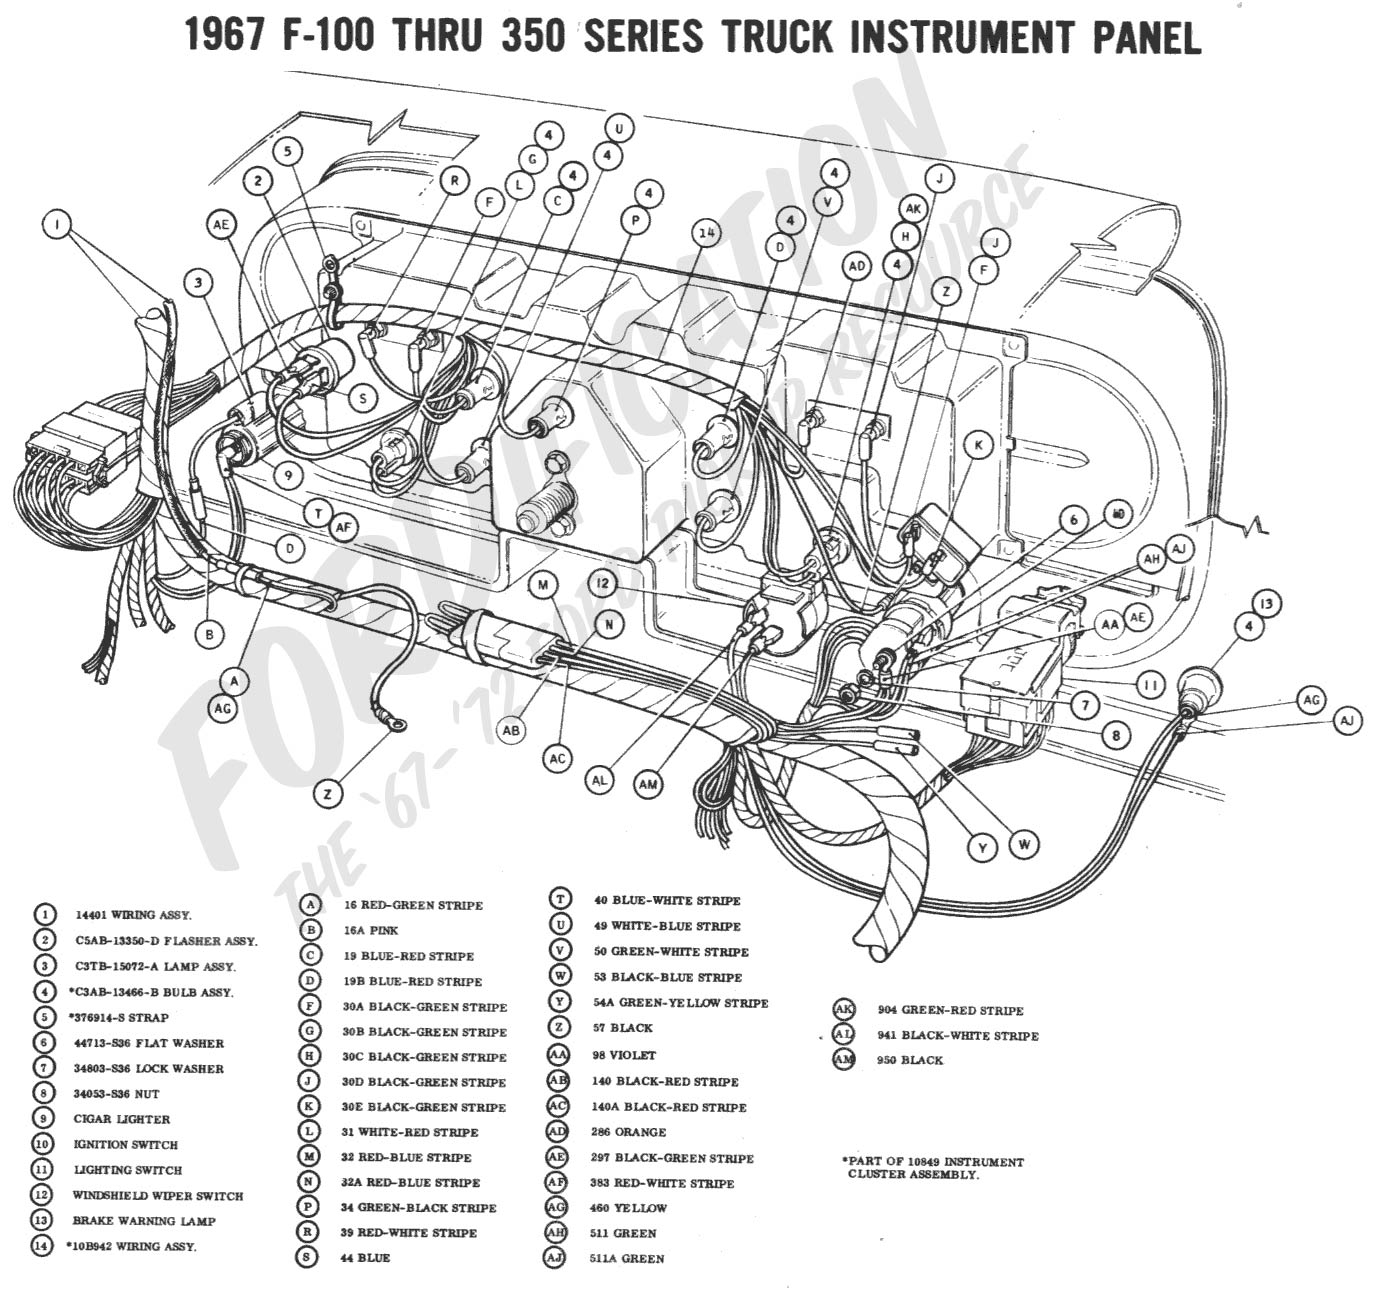 wiring 1967instrumentpanel ford truck technical drawings and schematics section h wiring Ford 4600 Wiring Schematic at nearapp.co